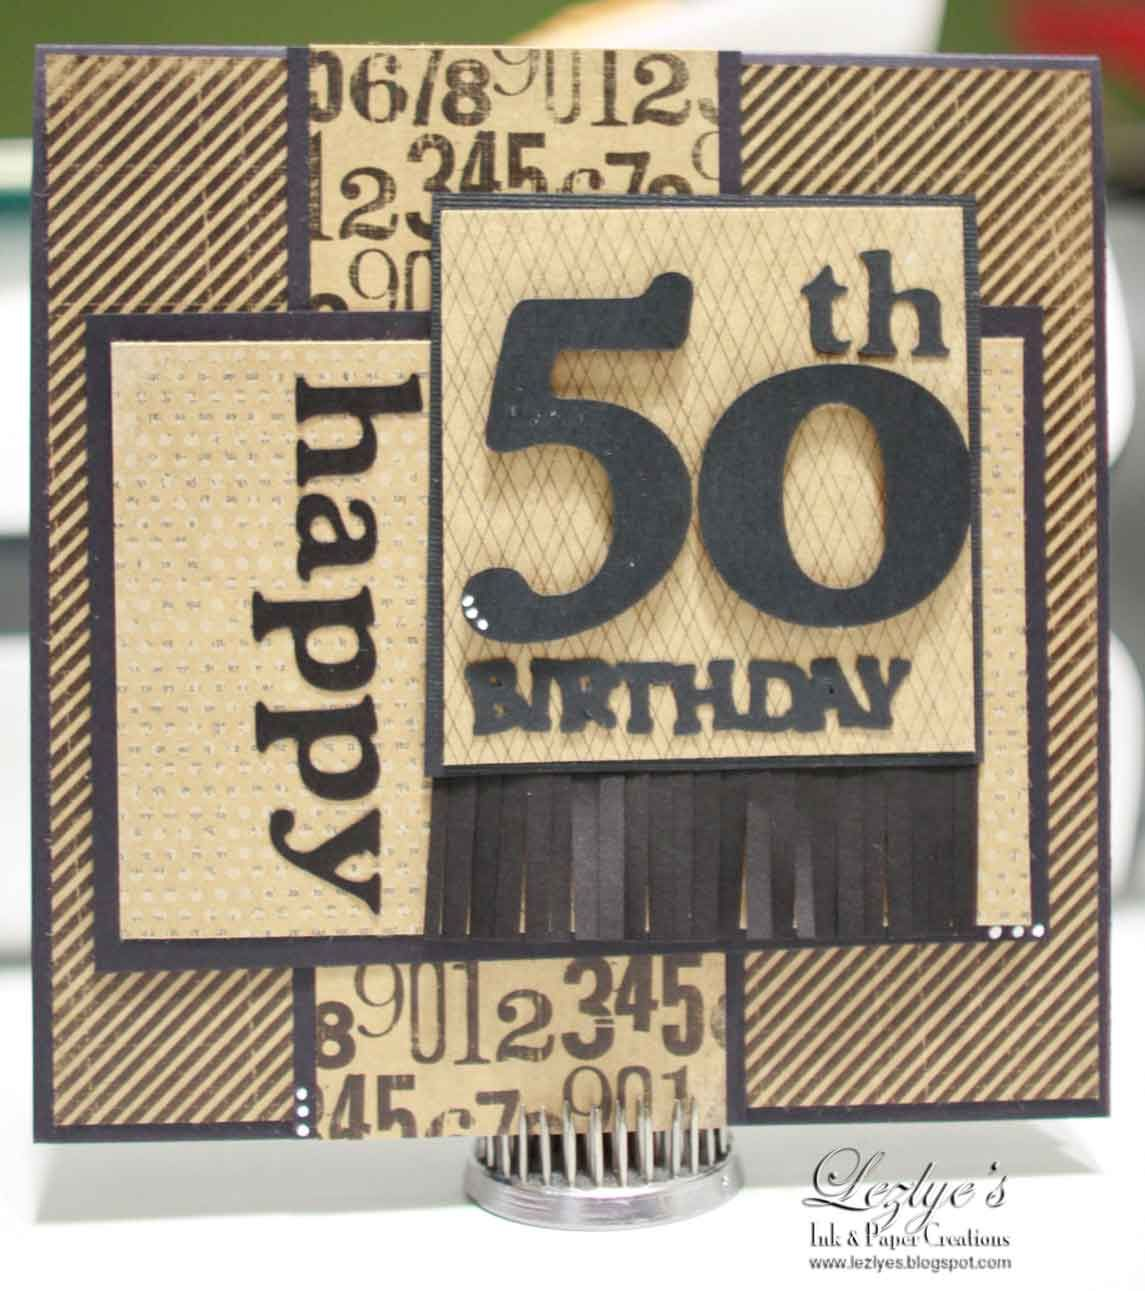 Ink and paper creations th male birthday cardshop pumpkin spice